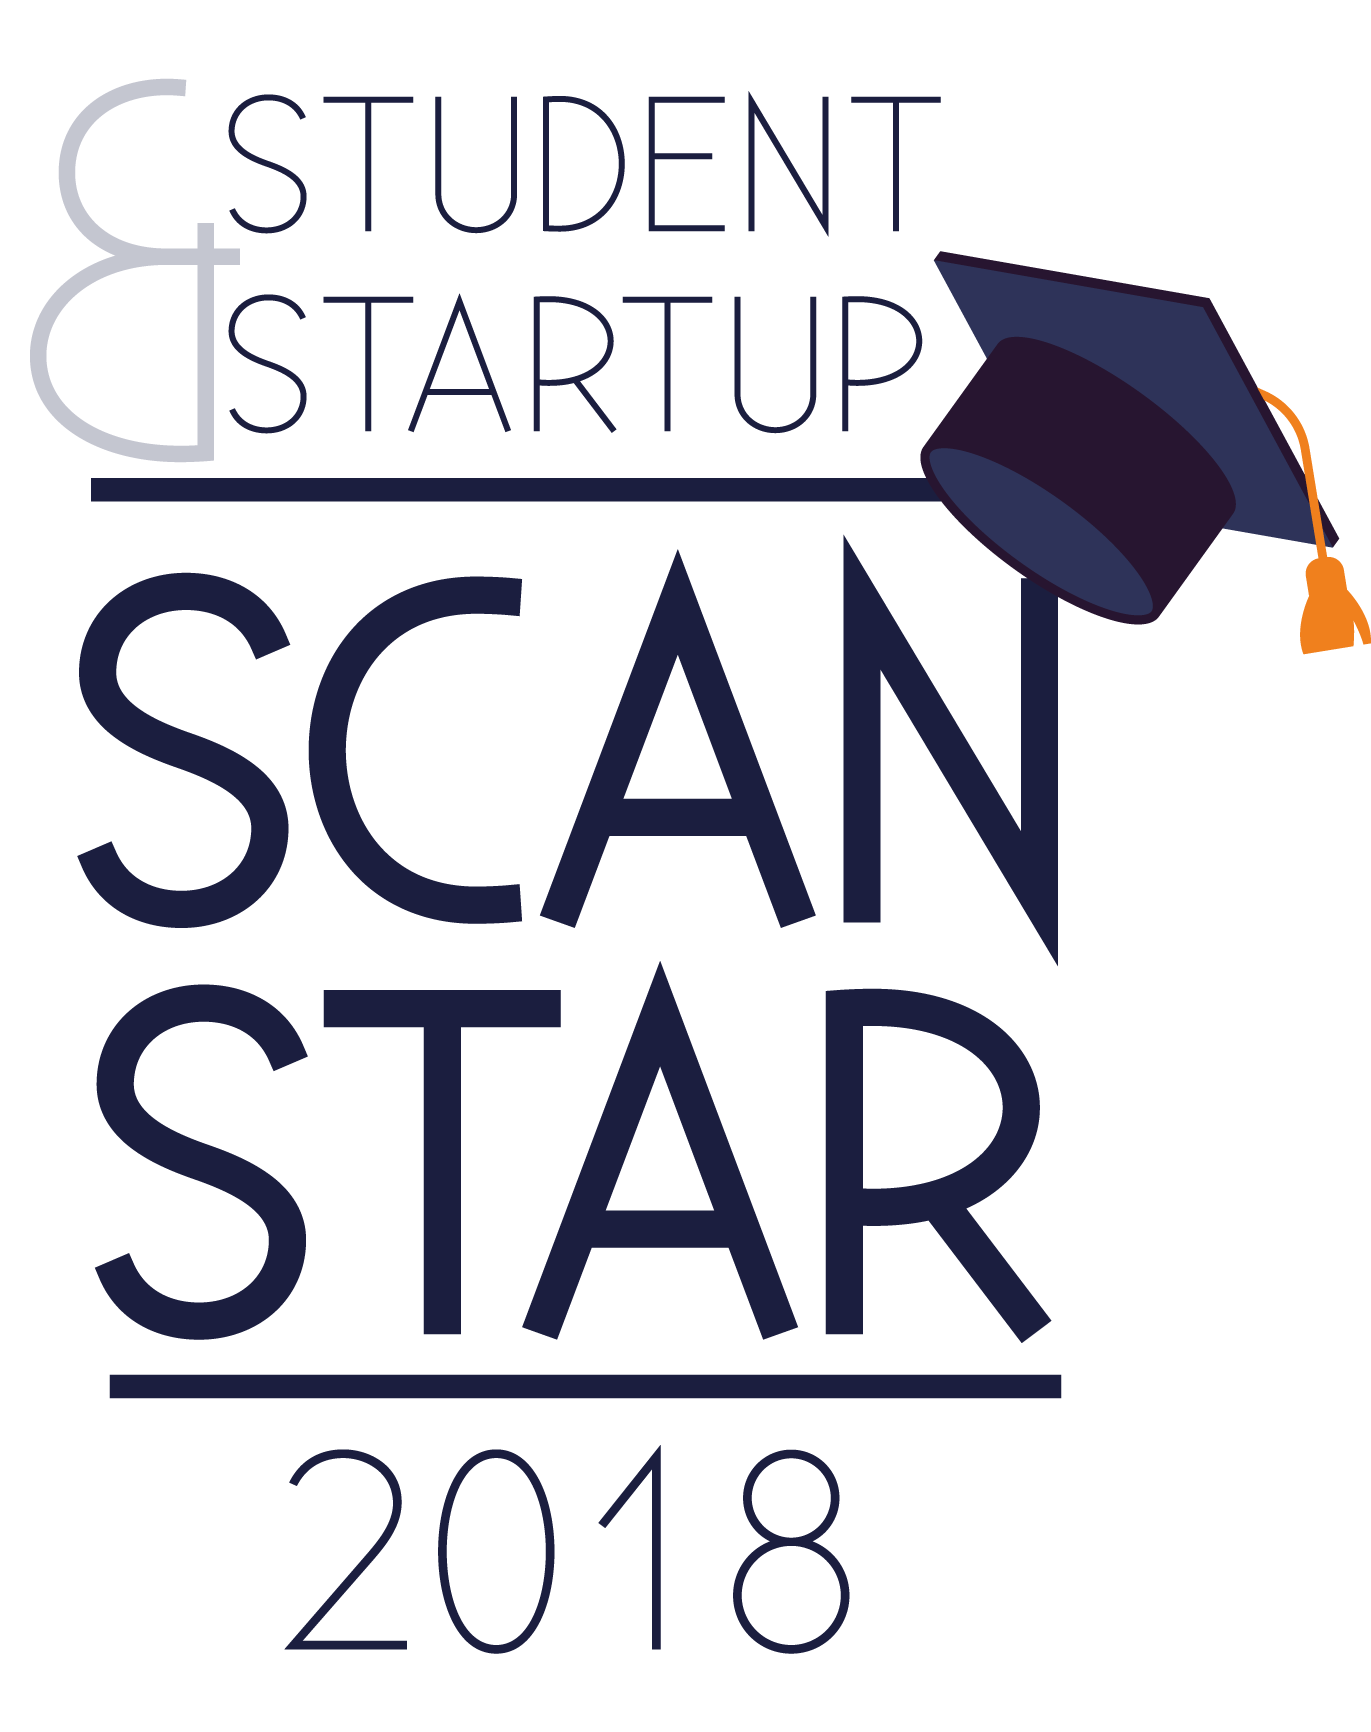 Scanstar Student & Startup Packaging Design Competition 2018